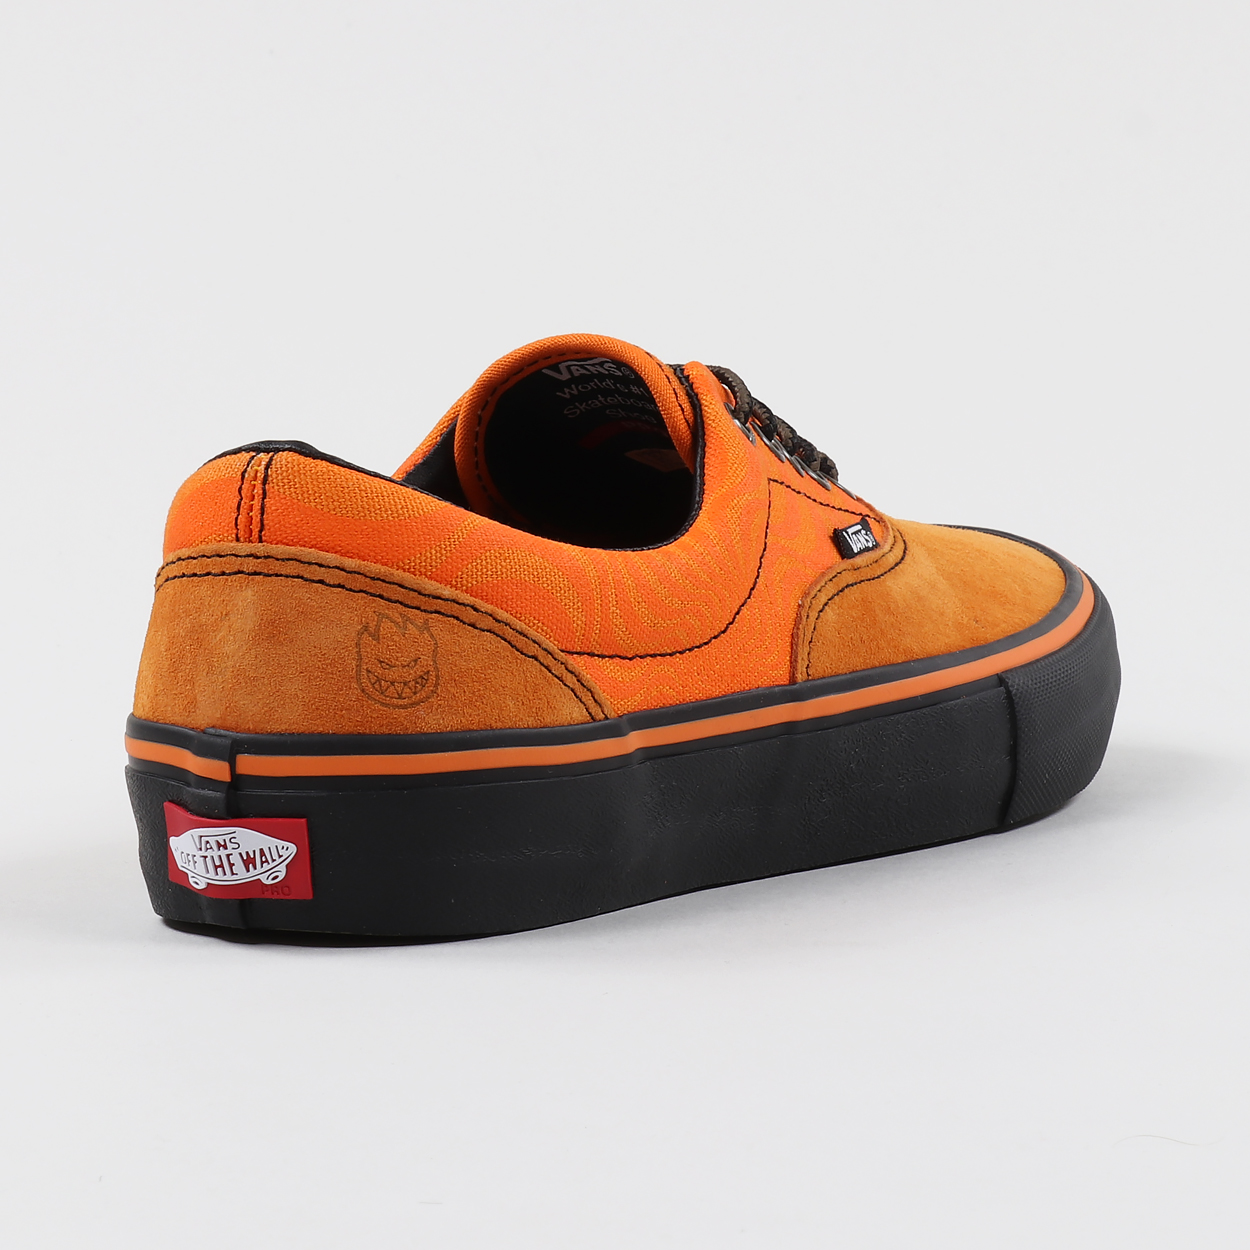 0b3025377c8f A pair of trainers from Vans  collaboration with Spitfire. True  skateboarding vibes with 41% textile and 59% synthetic uppers